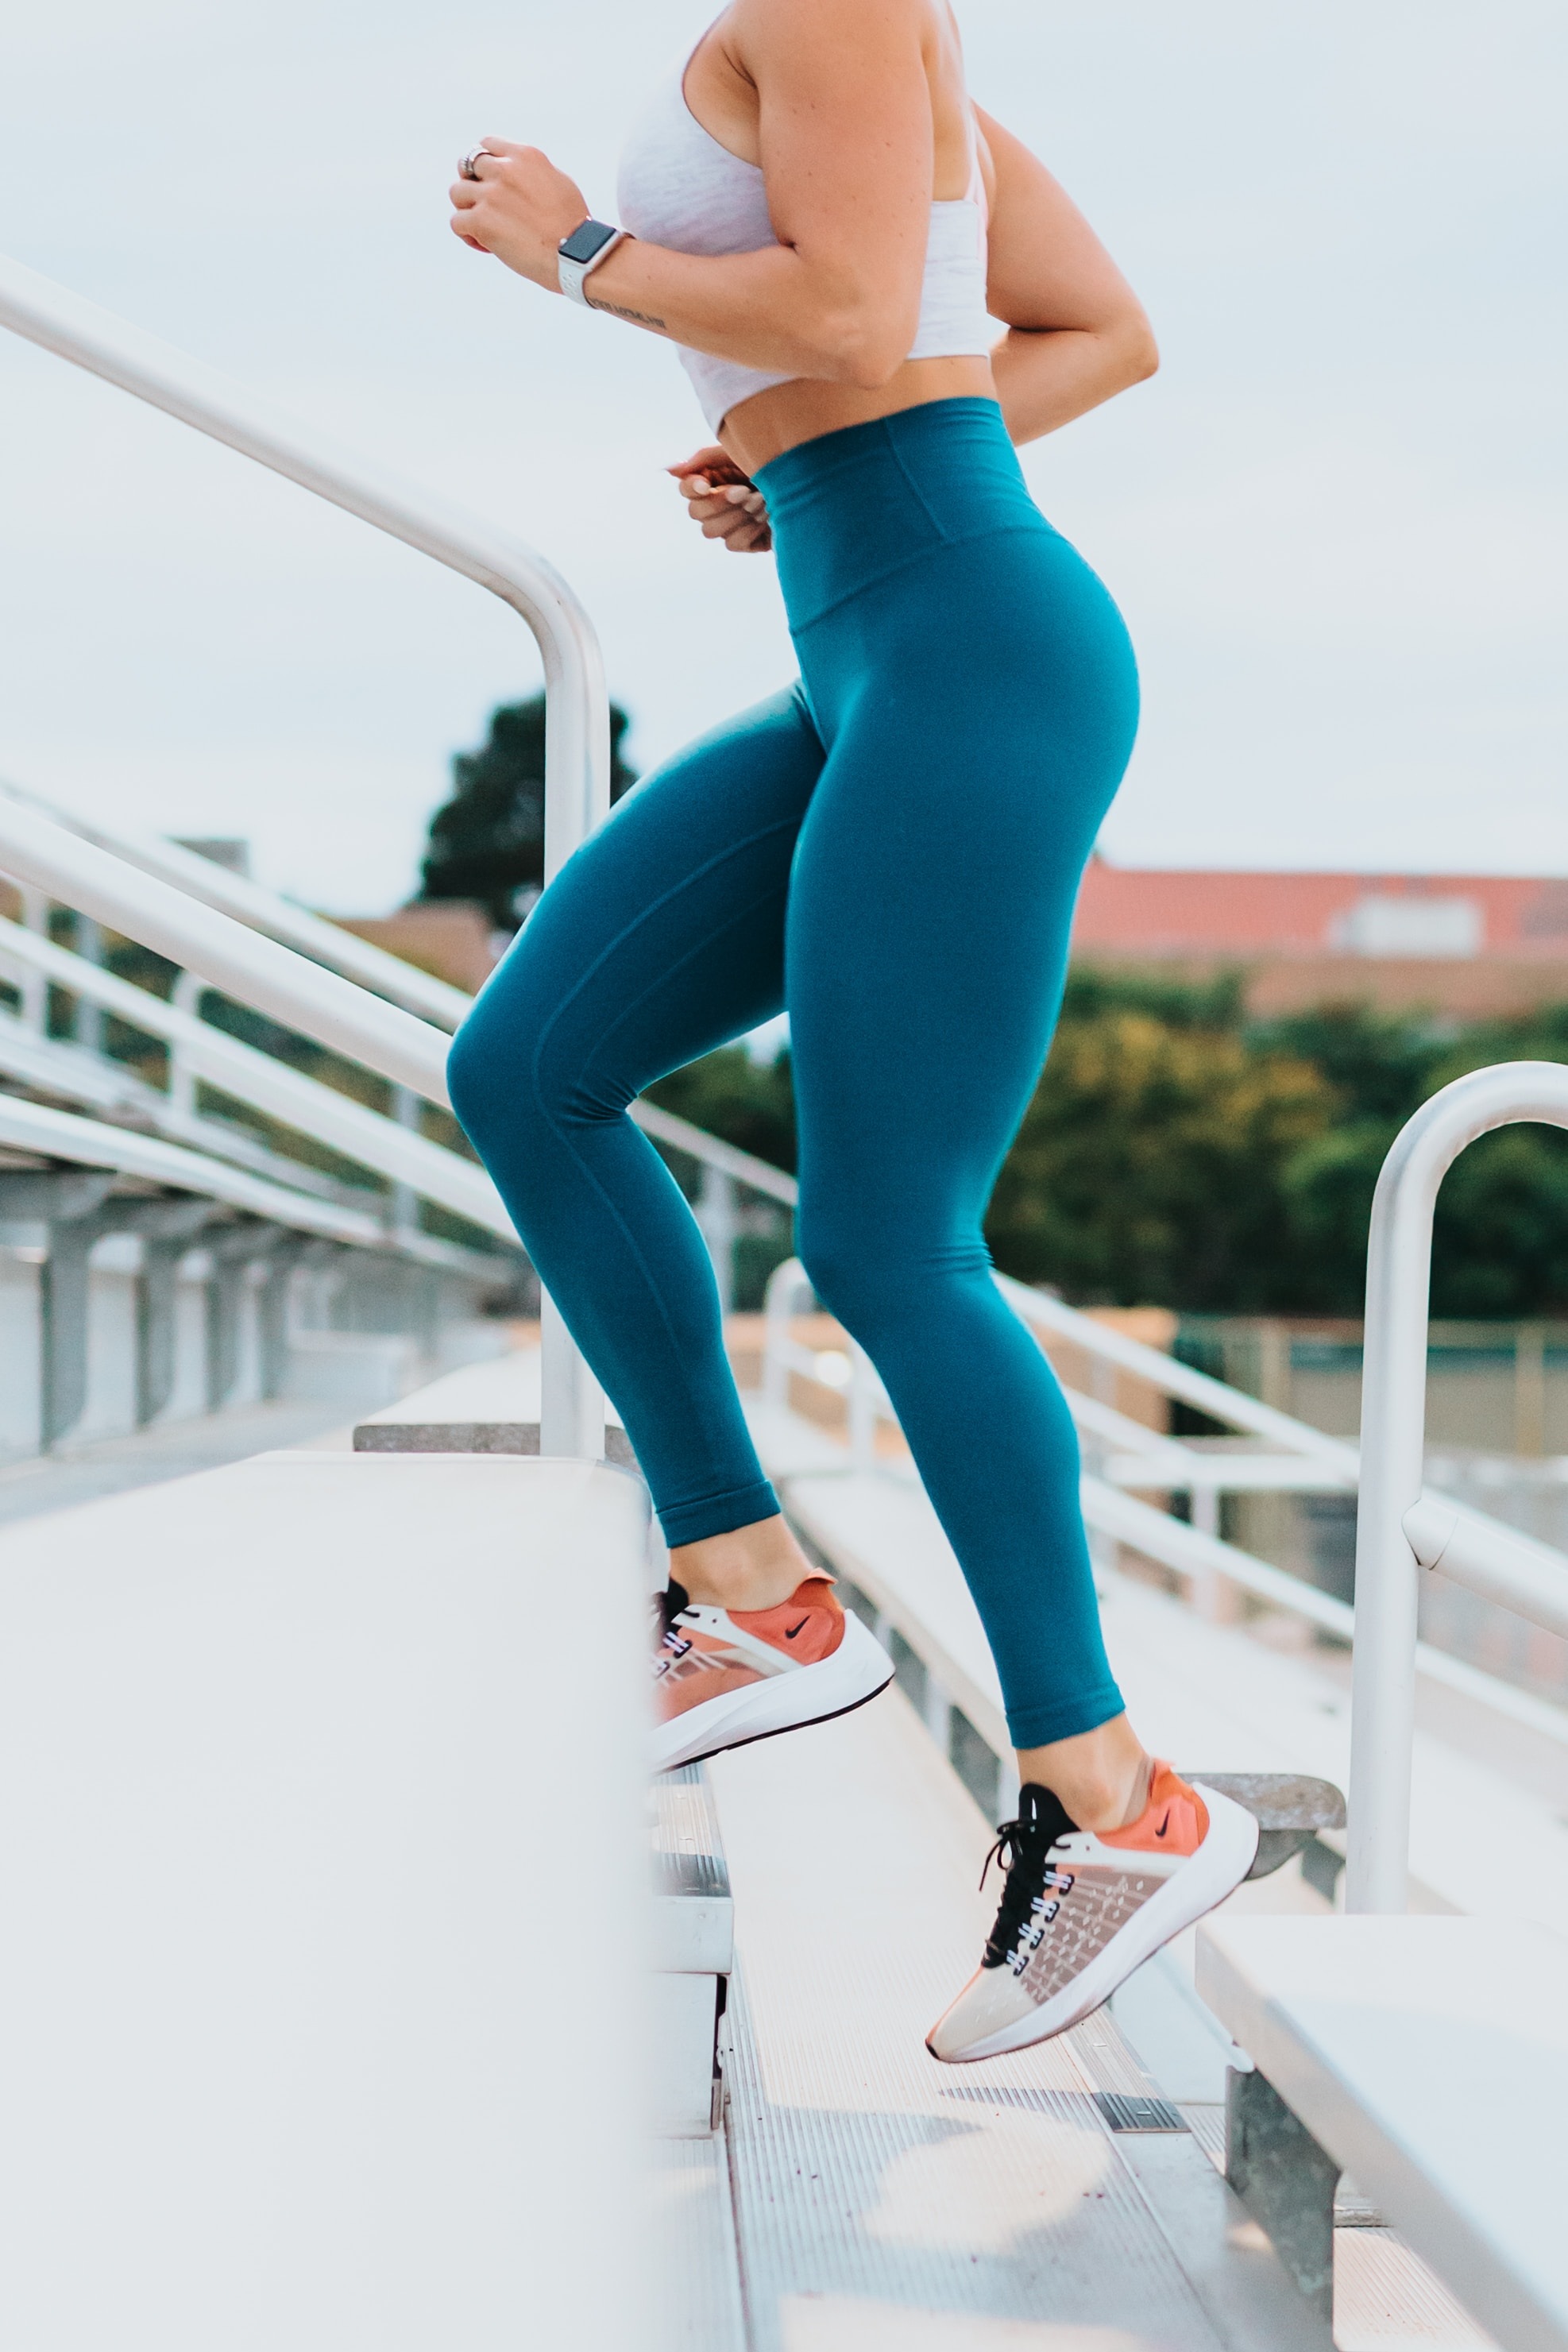 Postpartum Exercise – What Do The Experts Recommend?